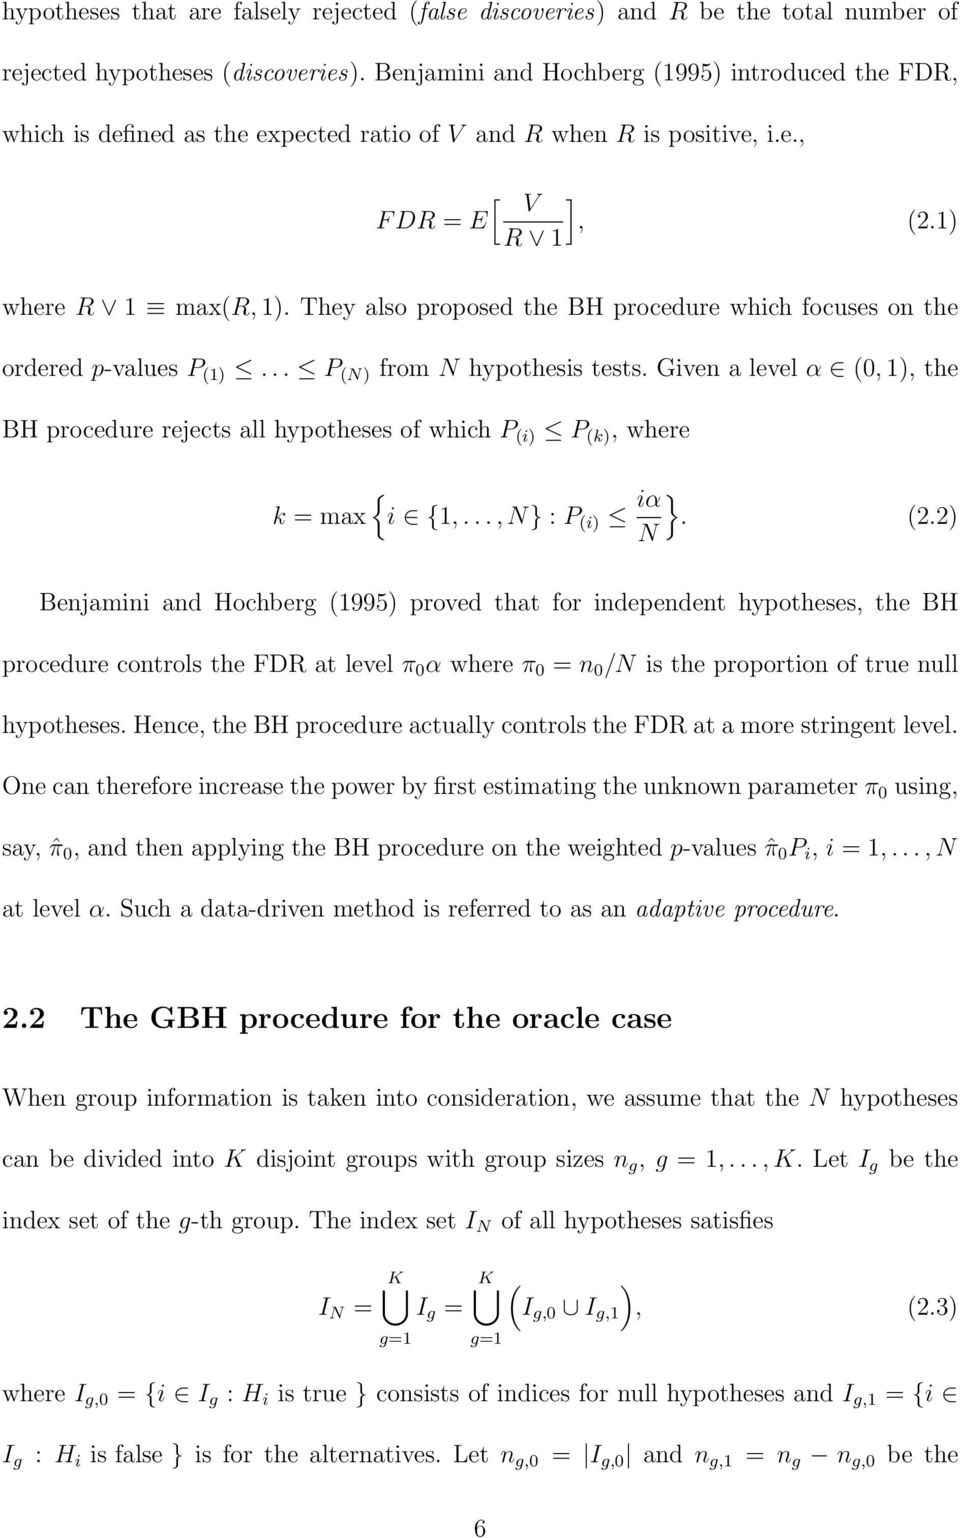 They also proposed the BH procedure which focuses on the ordered p-values P (1)... P (N) from N hypothesis tests.